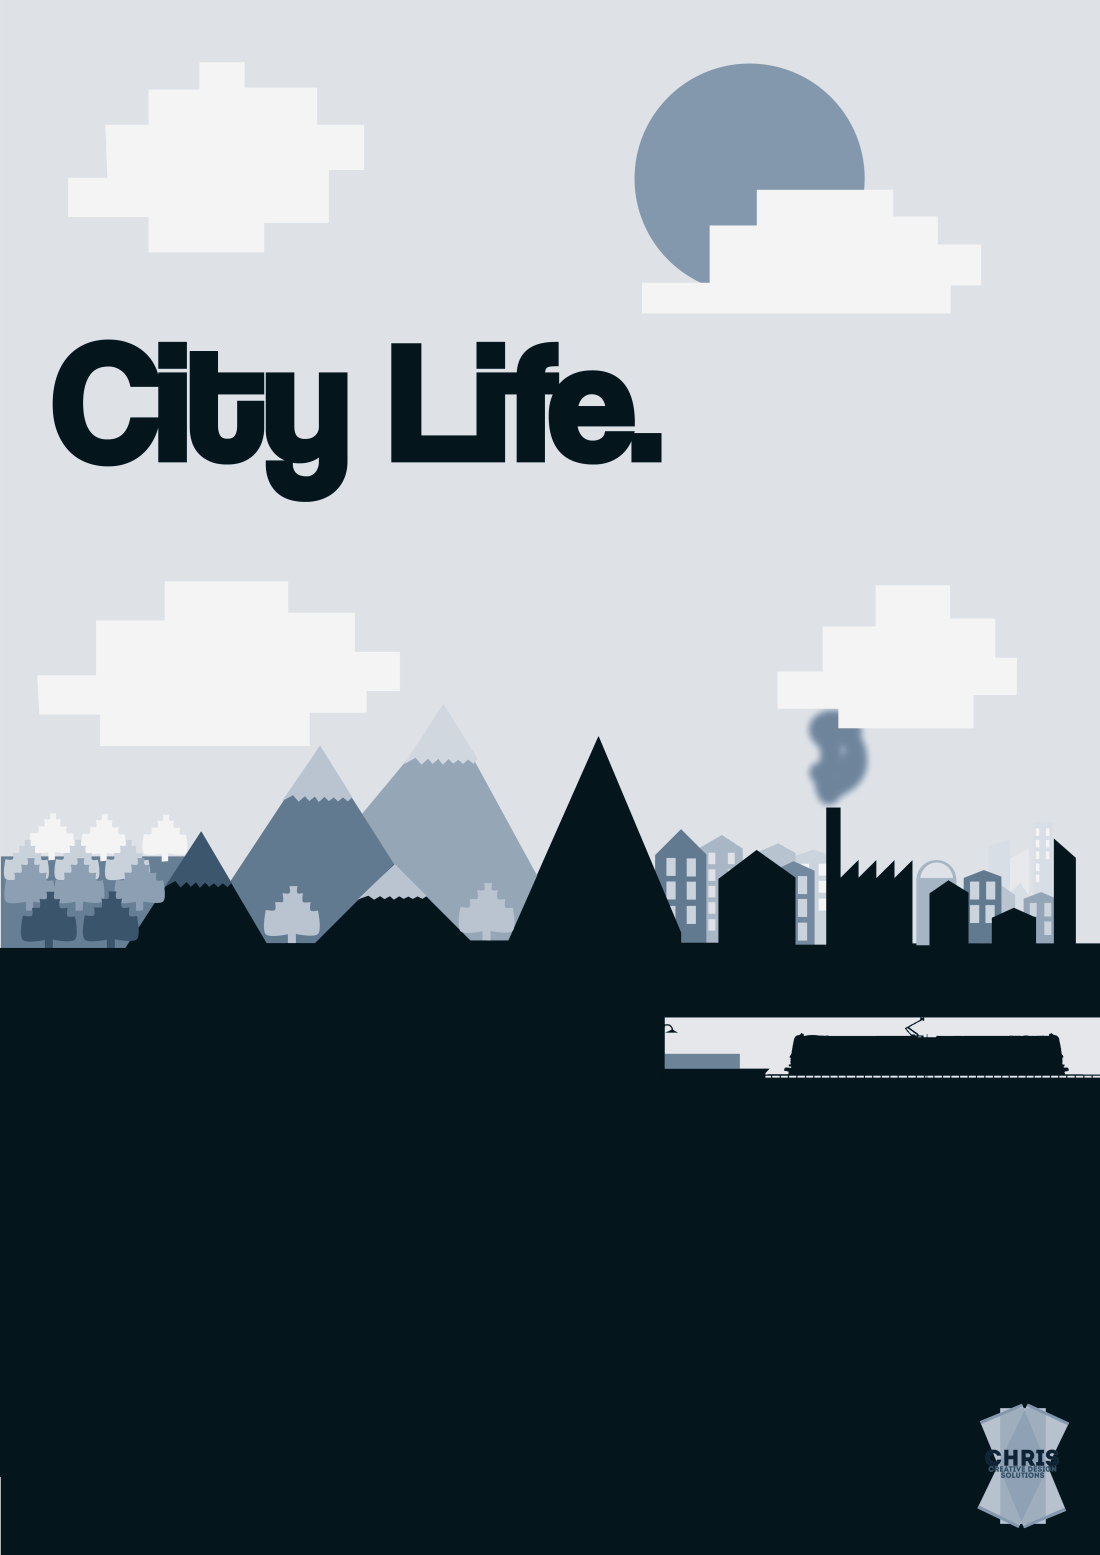 City Life - Interior Deco Poster